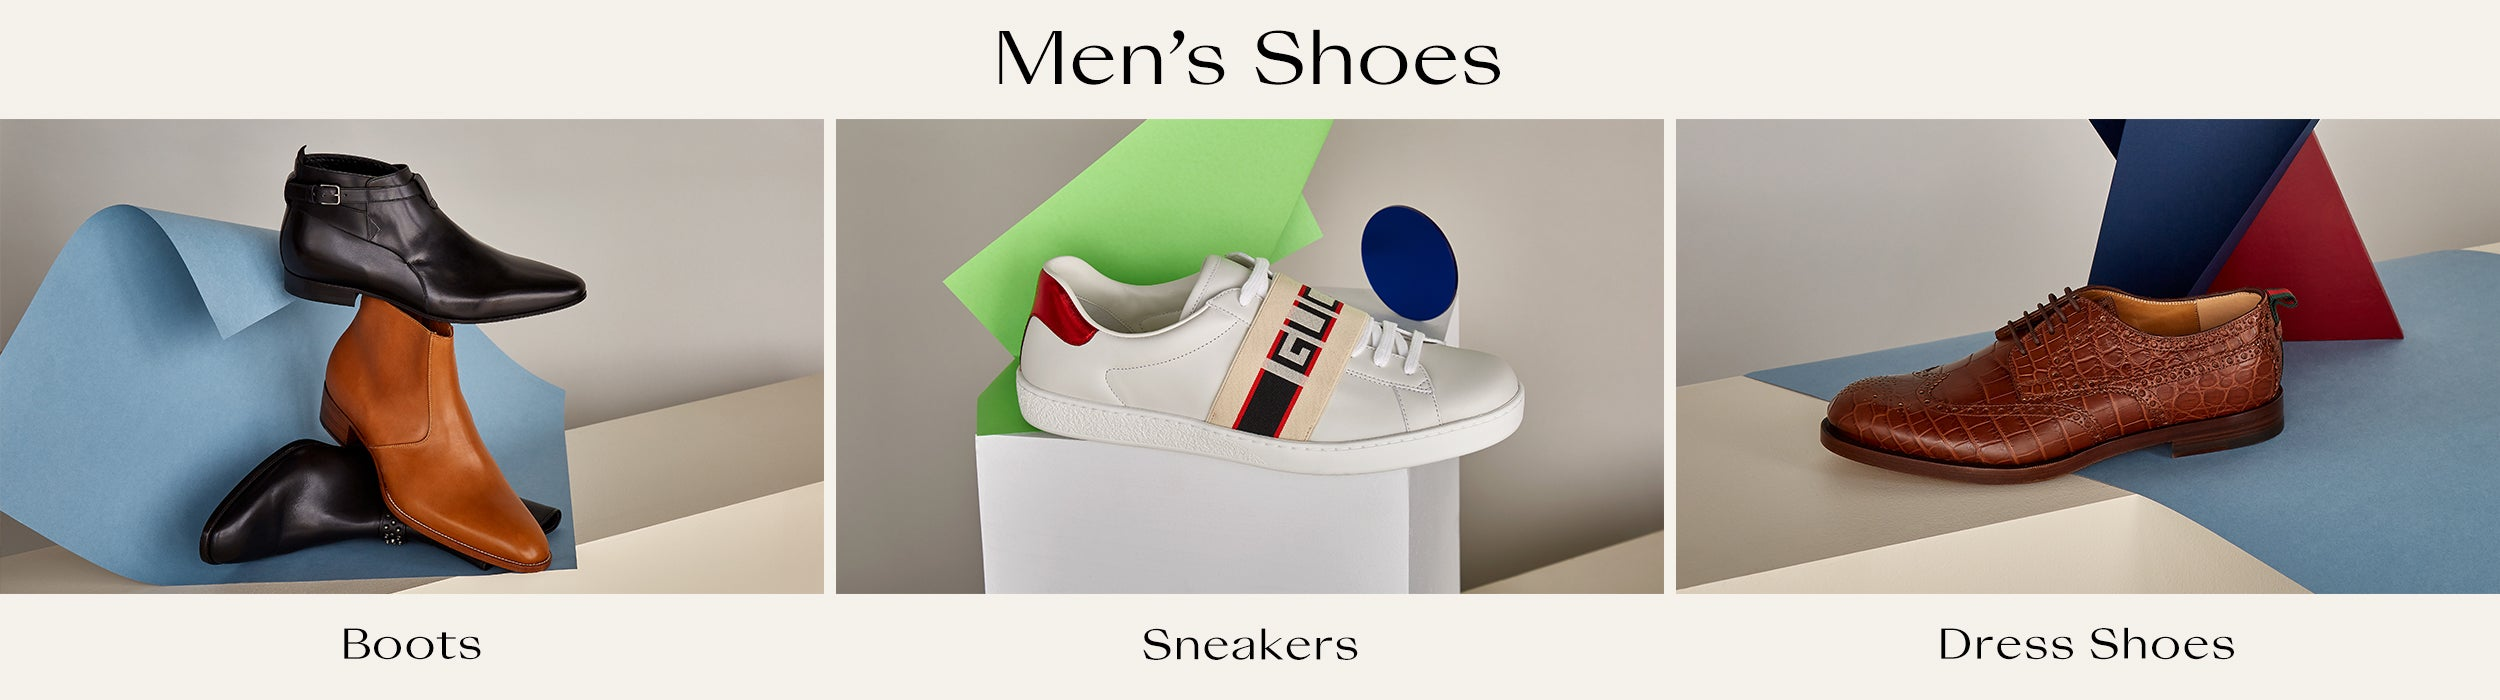 688d349d058f Men s Shoes